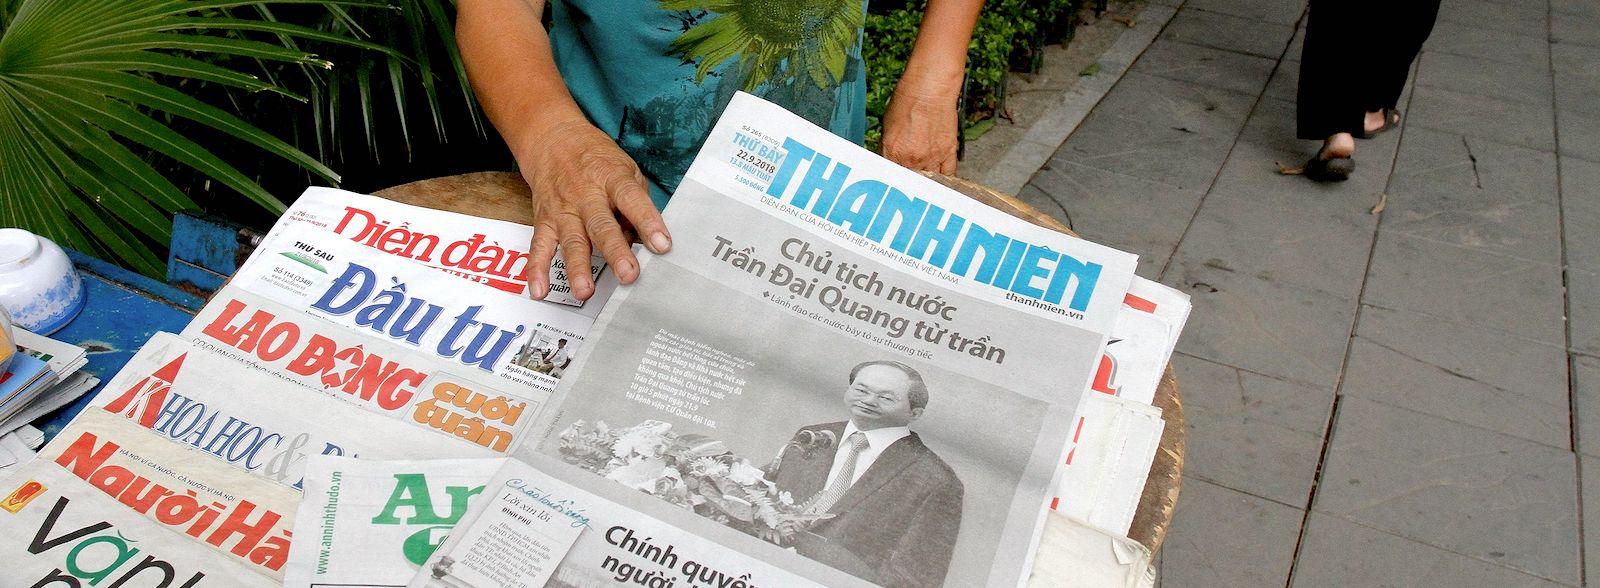 Newspapers reporting on Vietnamese President Tran Dai Quang's death in Hanoi, 22 September, 2018 (Photo: Nhac Nguyen / AFP)